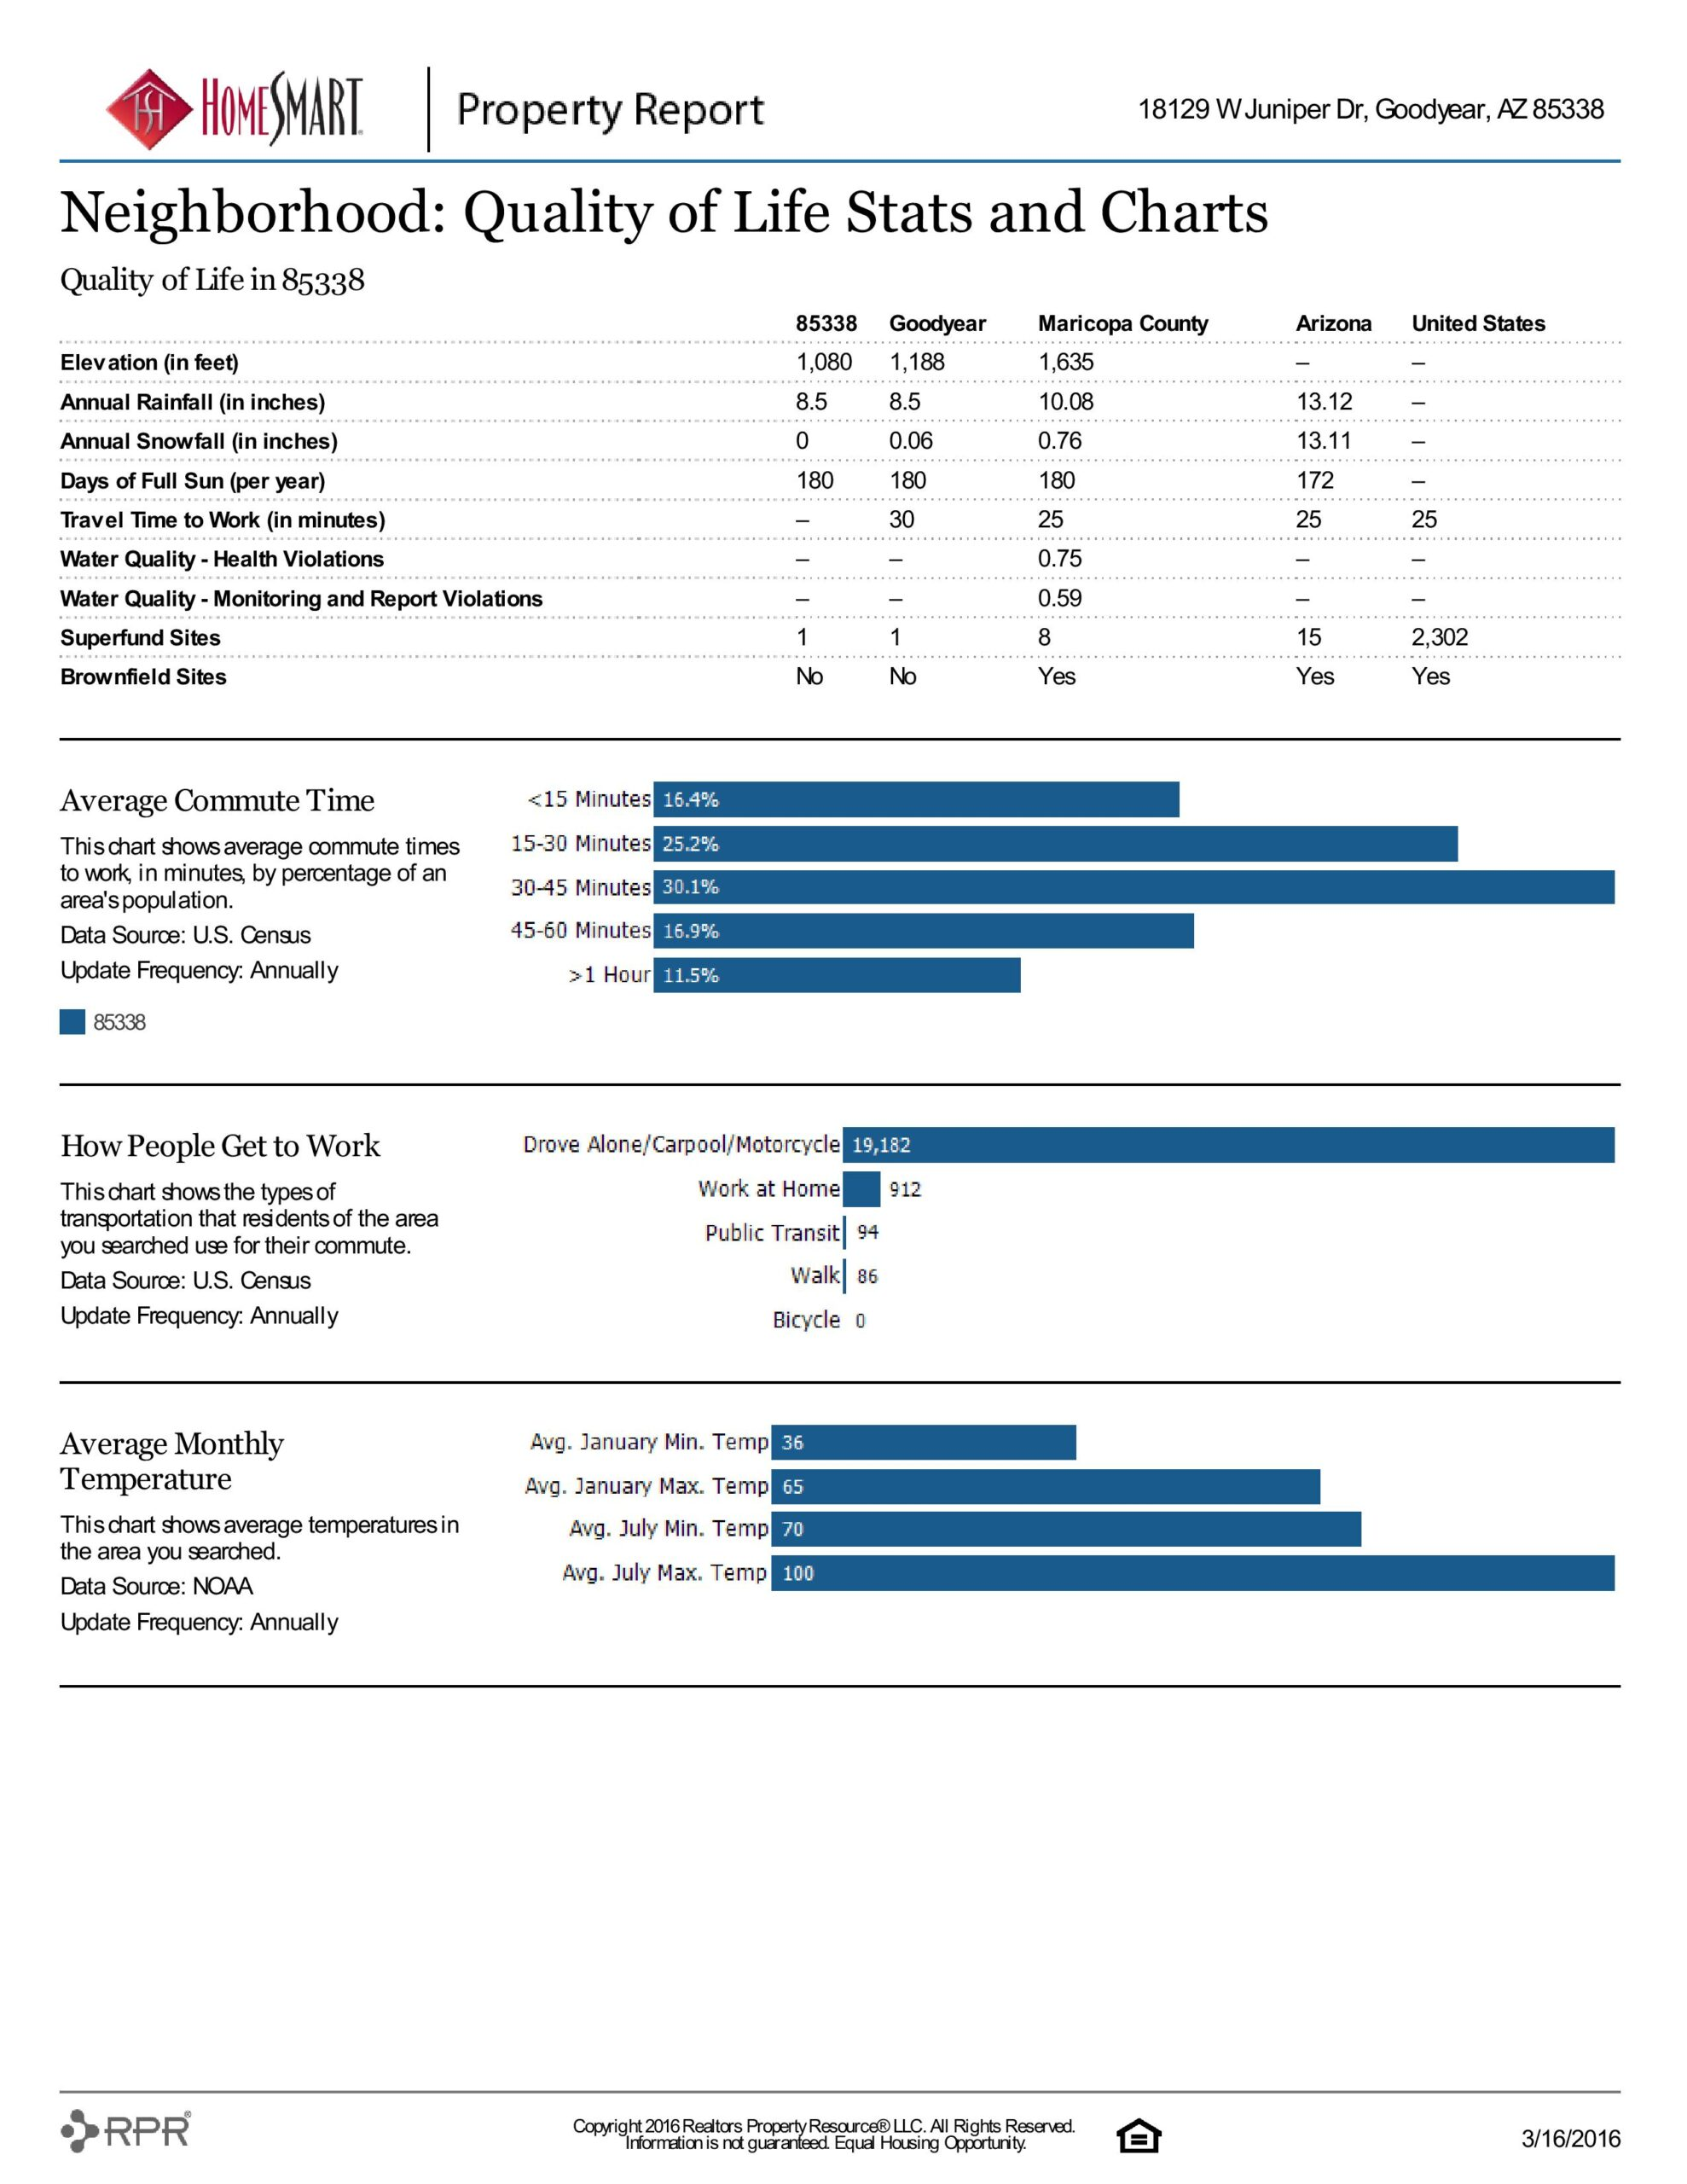 18129 W JUNIPER DR PROPERTY REPORT-page-025